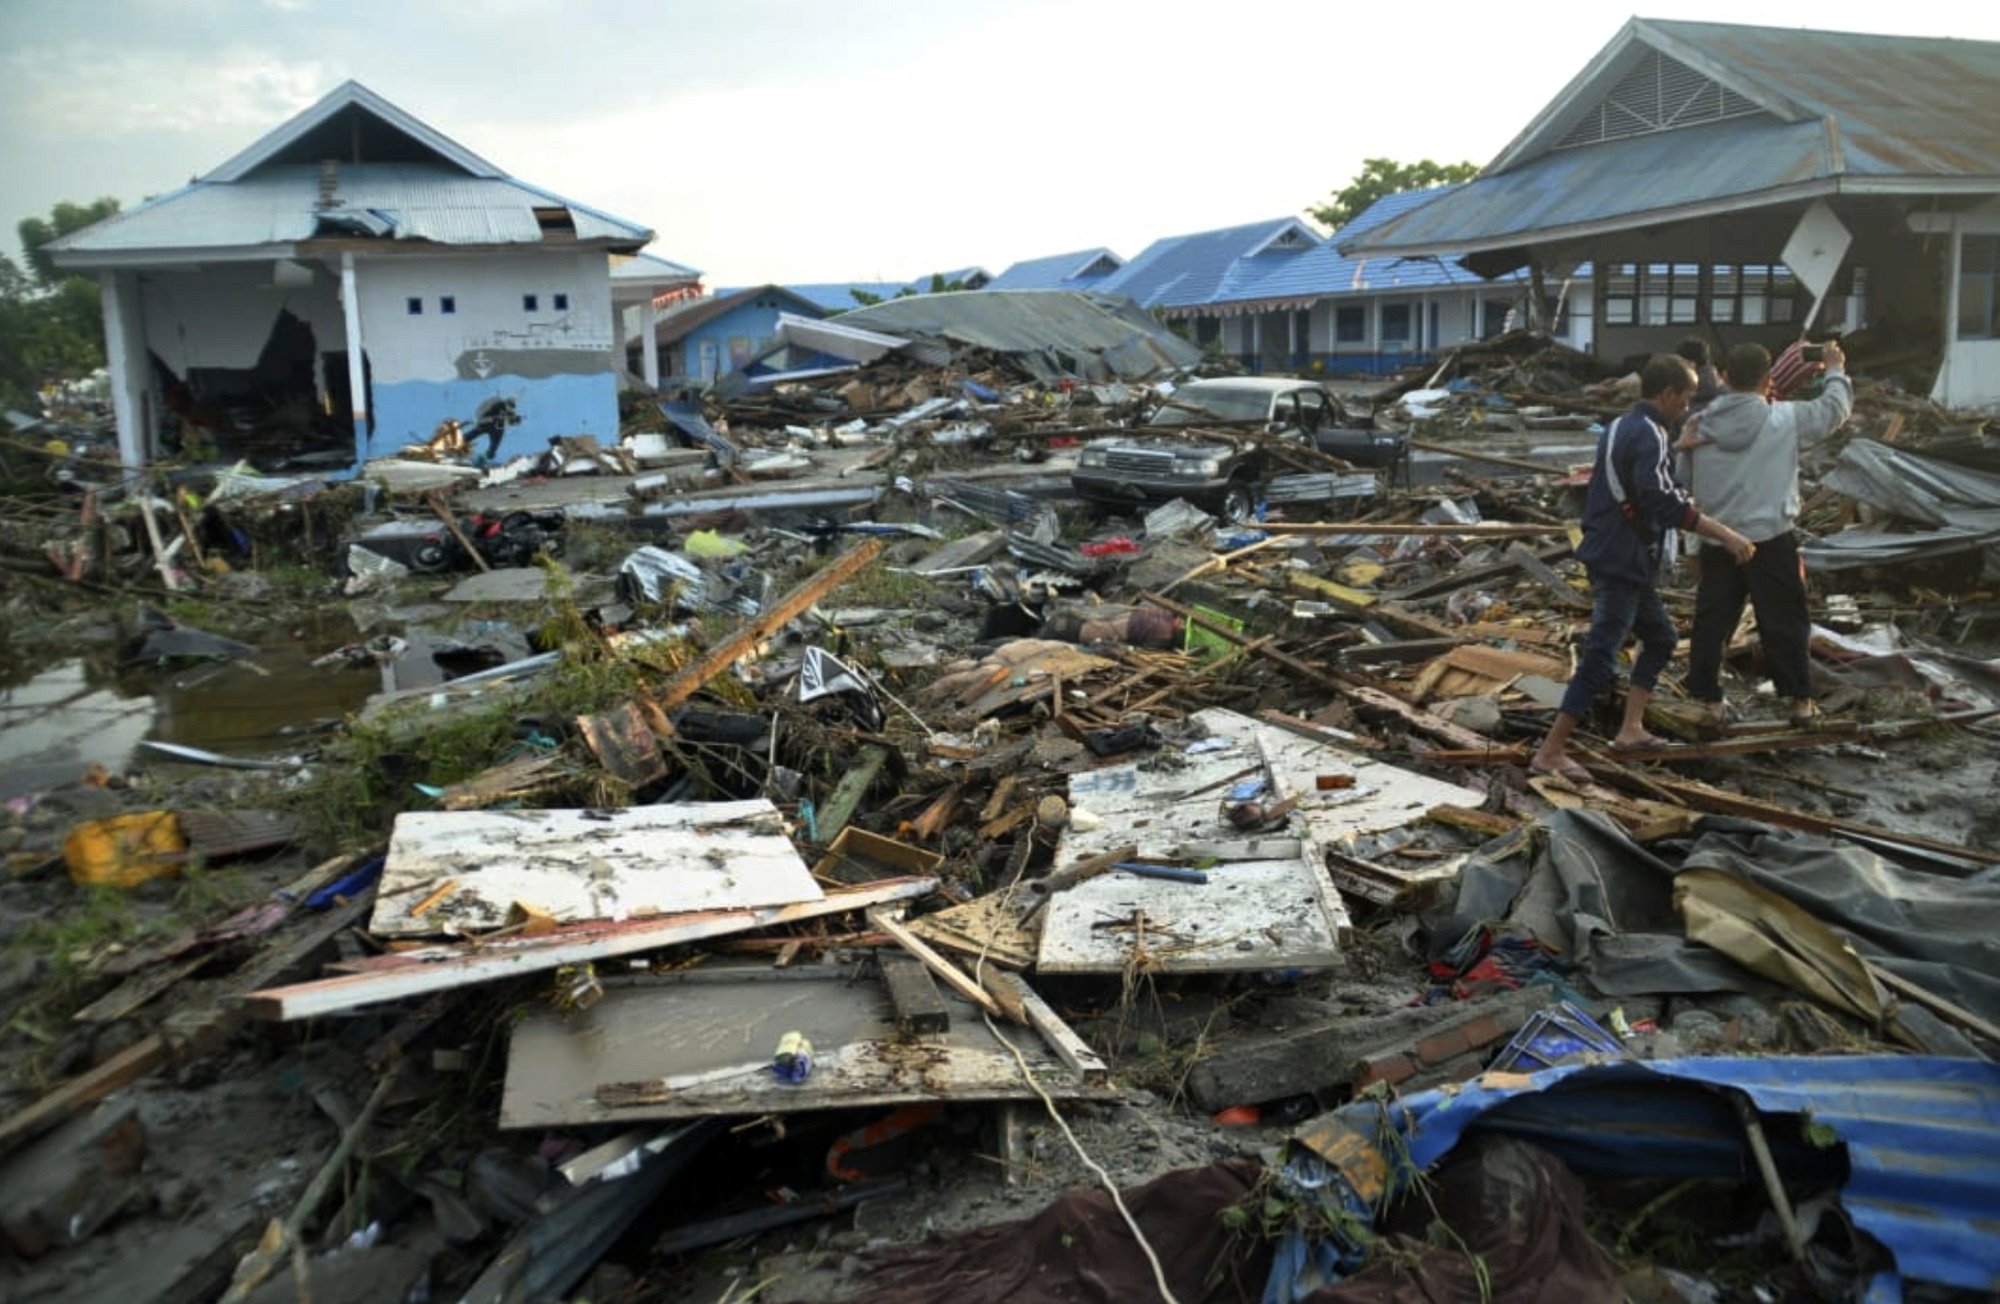 APTOPIX_Indonesia_Earthquake_82842-159532.jpg76770255